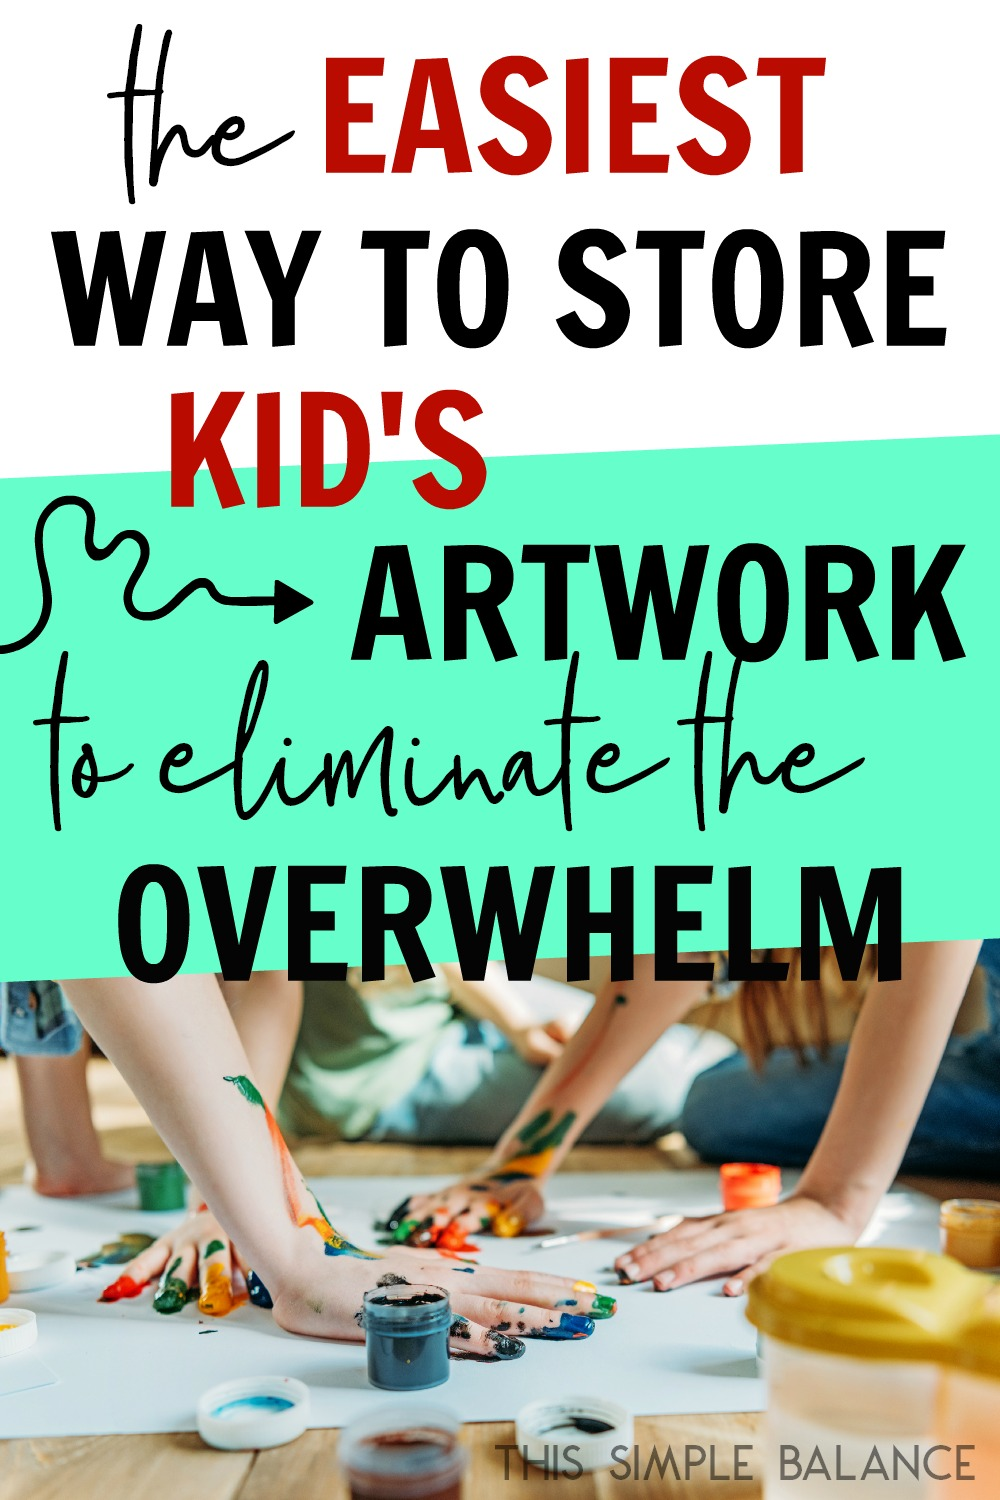 Kid's artwork can get out of control fairly quickly. Eliminate the overwhelm and get organized using this super simple system!